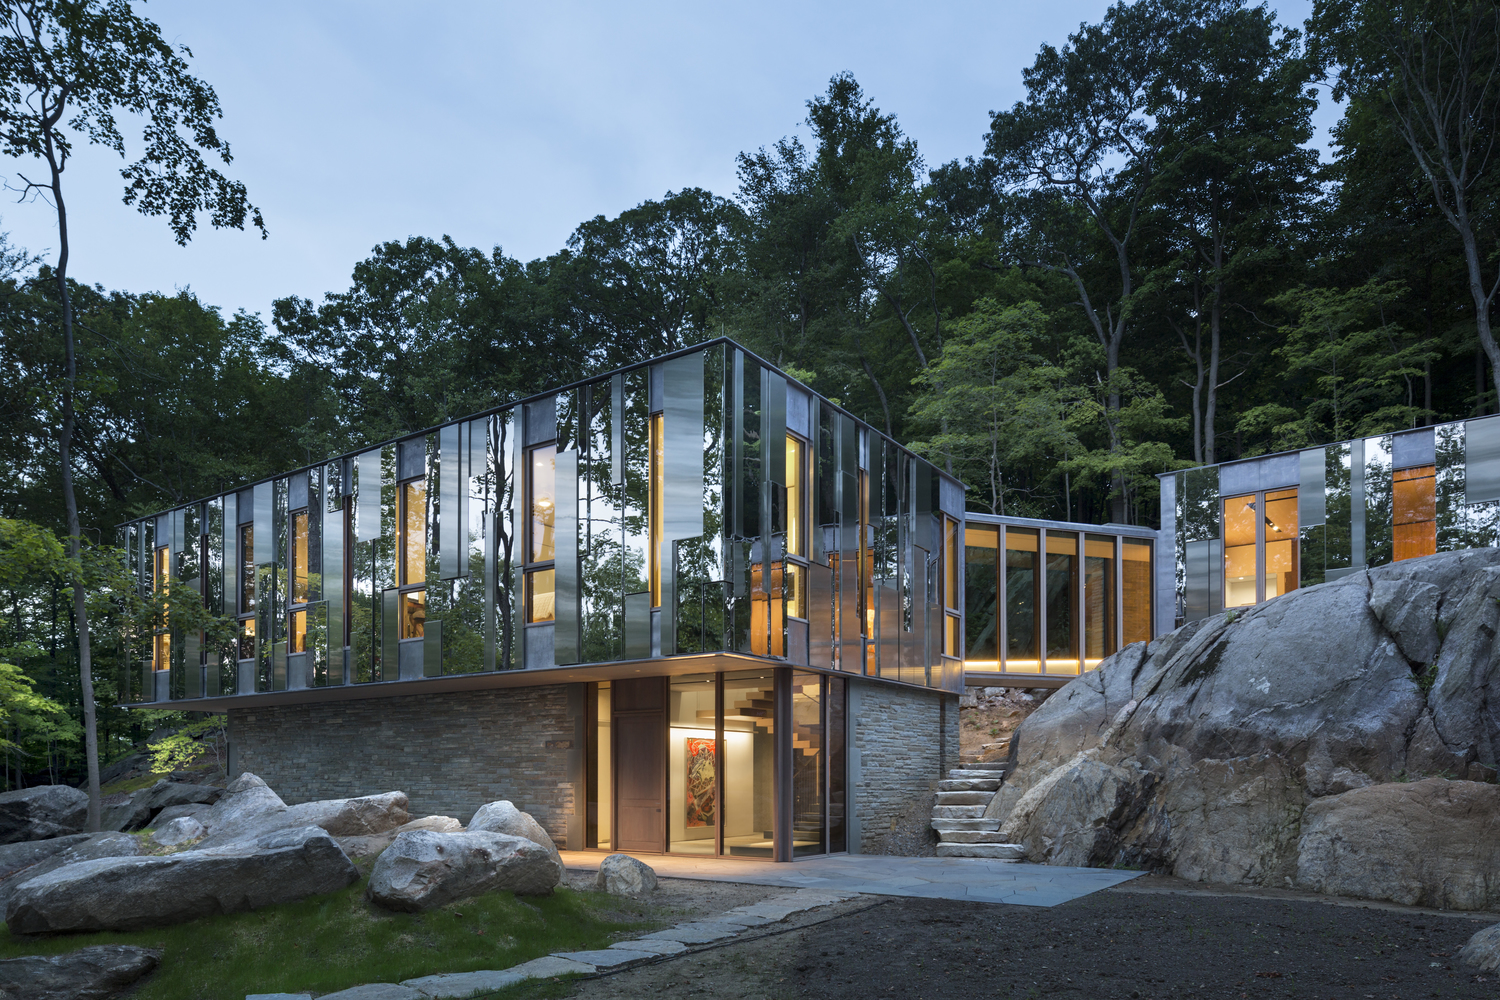 Kagan House, Location: Pound Ridge NY, Architect: Kieran Timberlake Architects